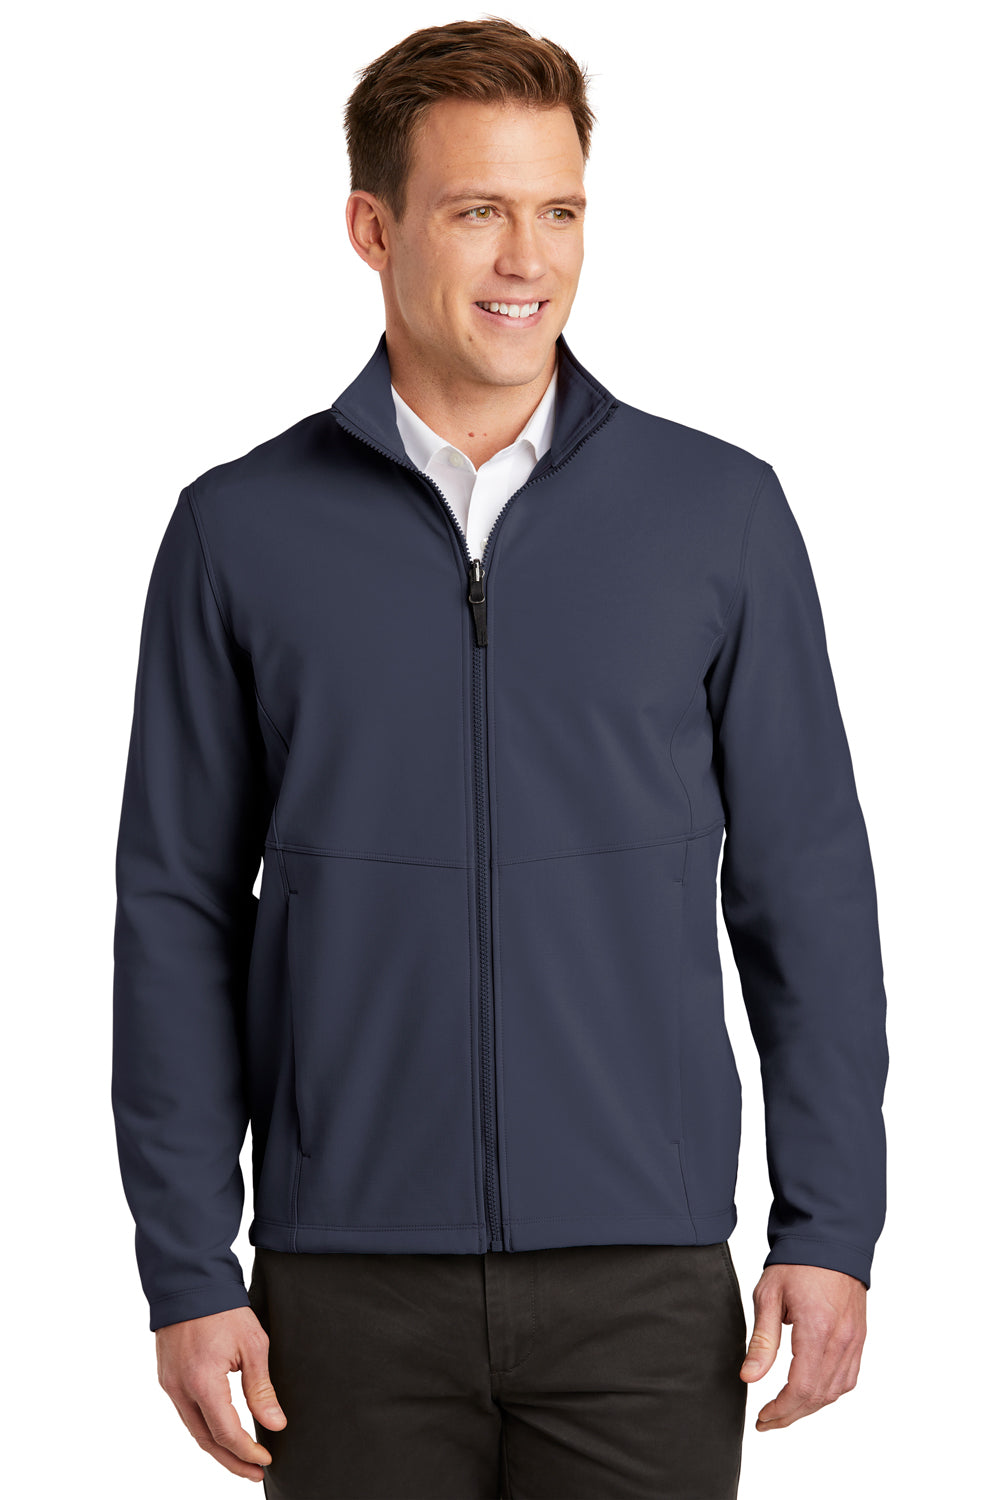 Port Authority J901 Mens Collective Wind & Water Resistant Full Zip Jacket River Blue Front